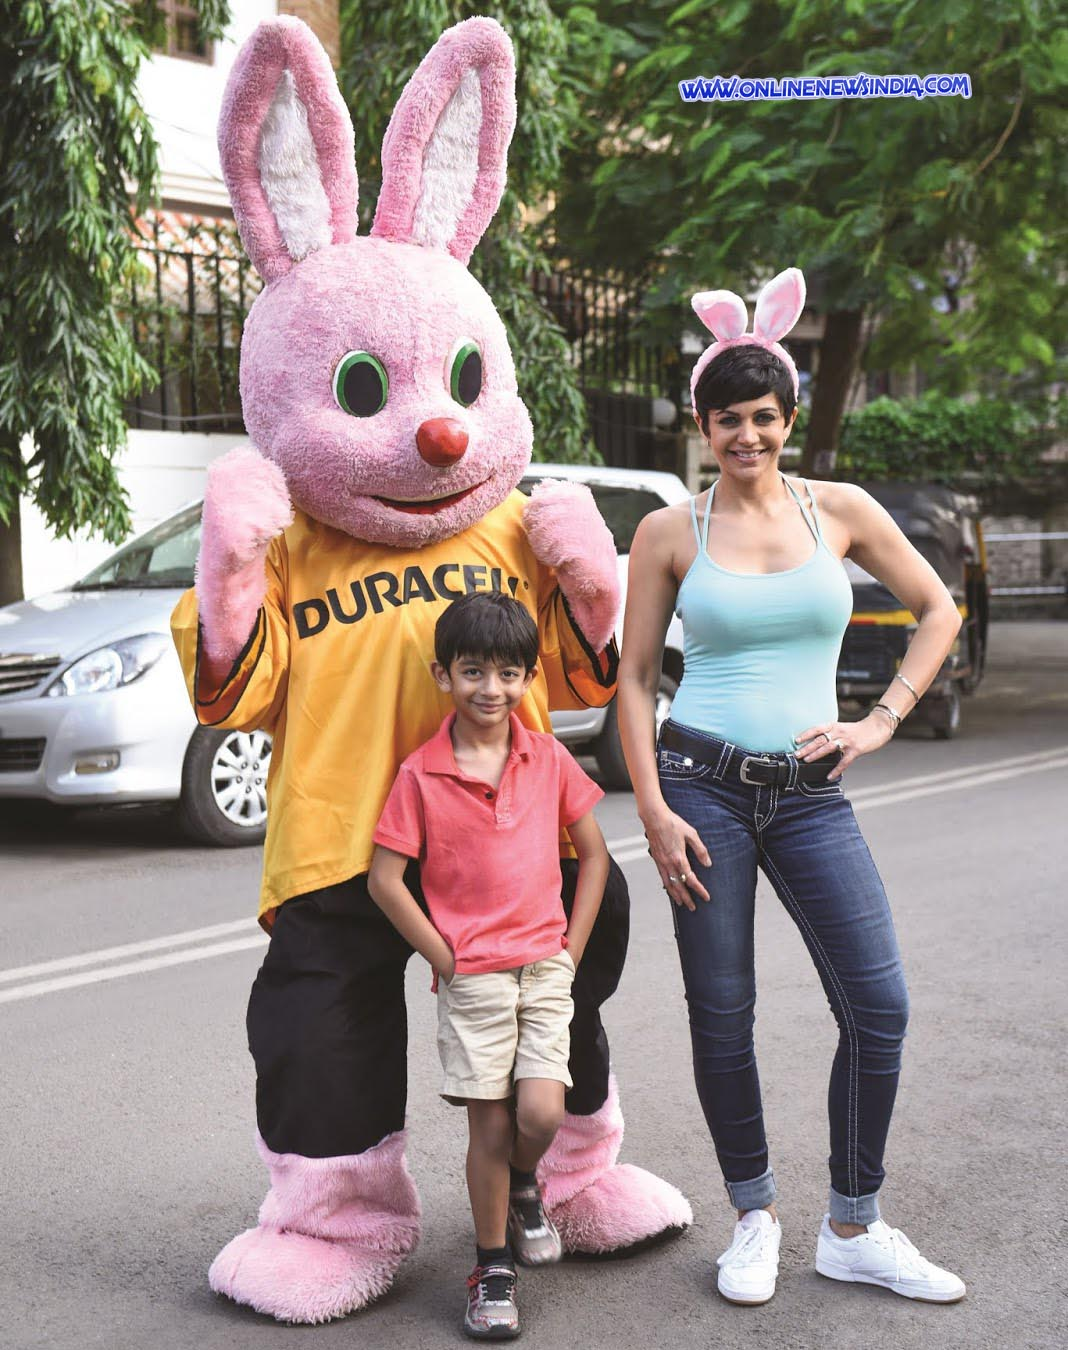 Mandira Bedi with her son Vir practicing for 2nd Durathon